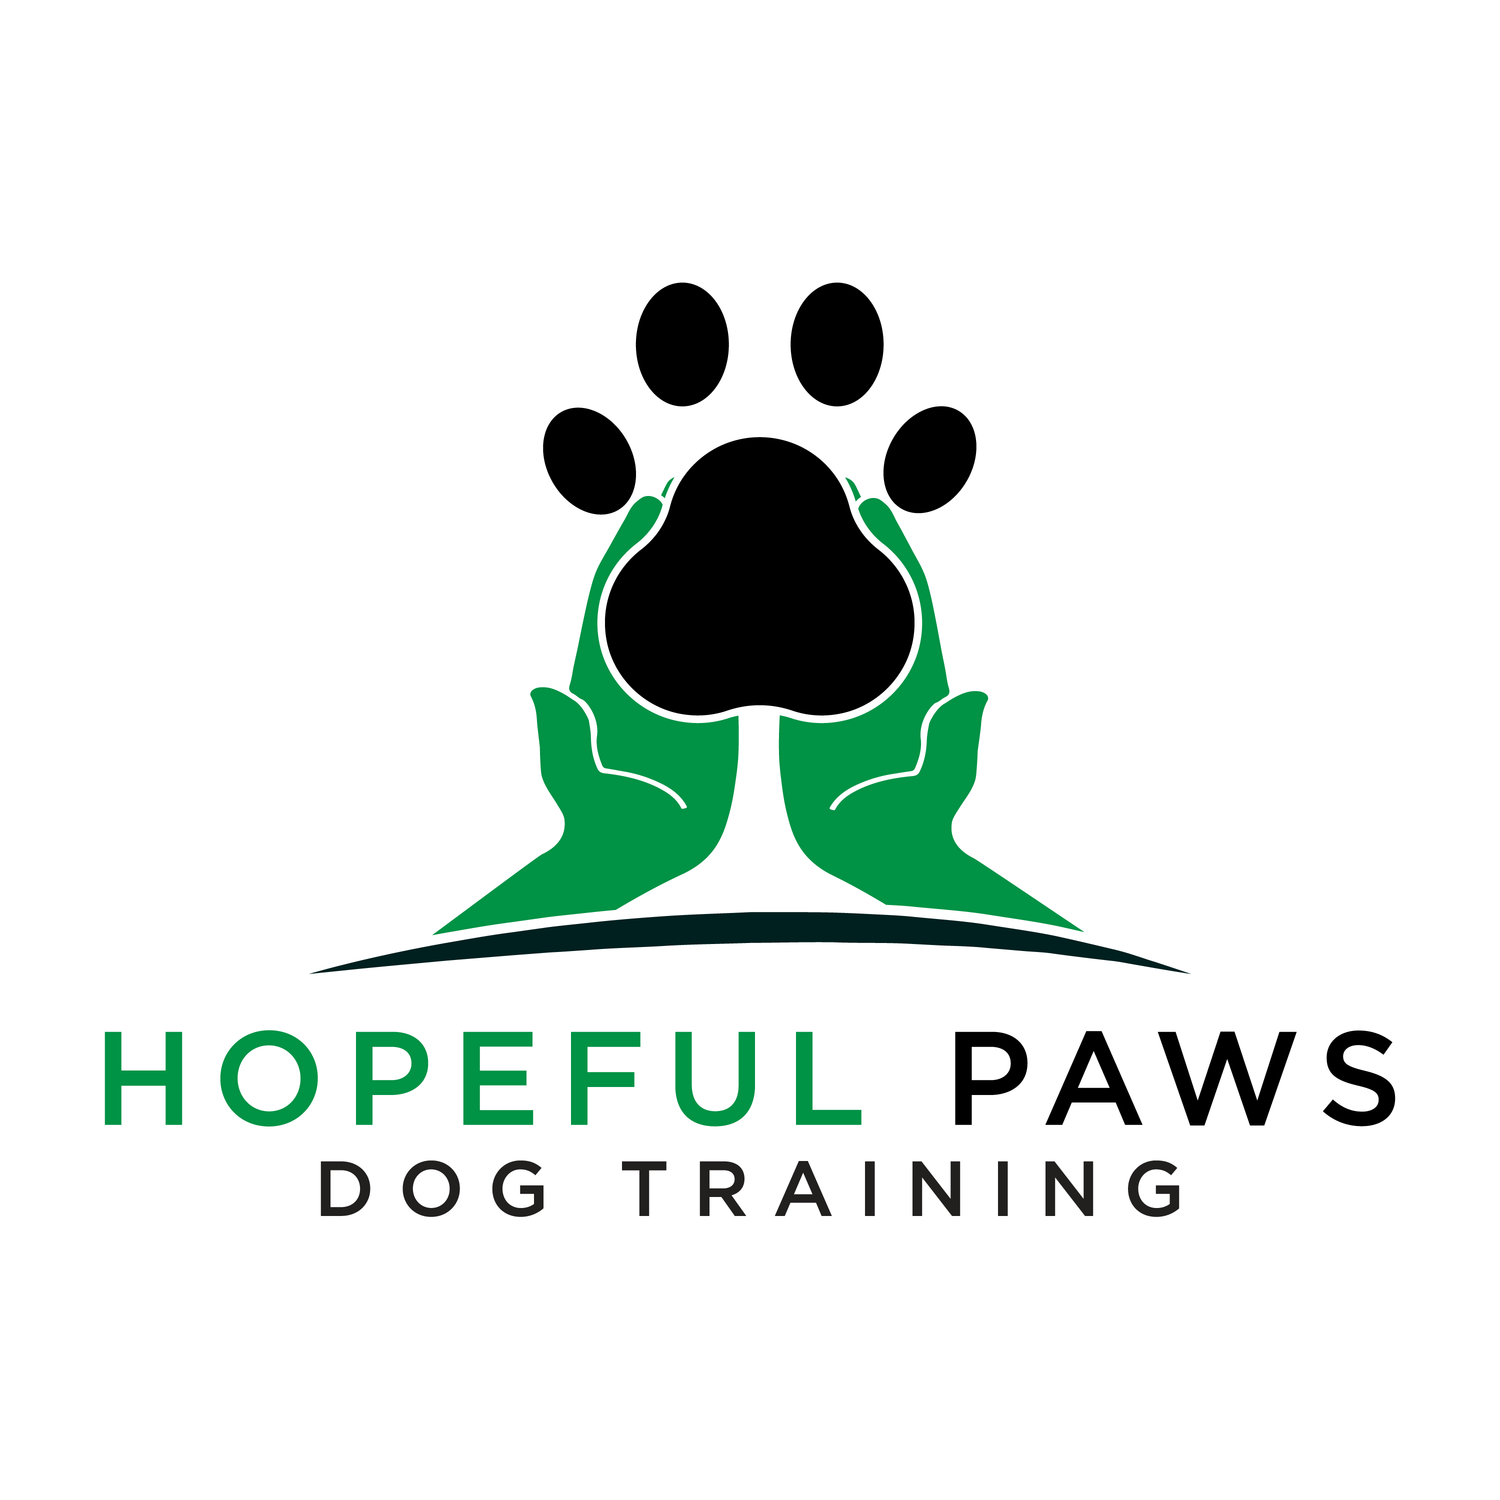 Hopeful Paws Dog Training